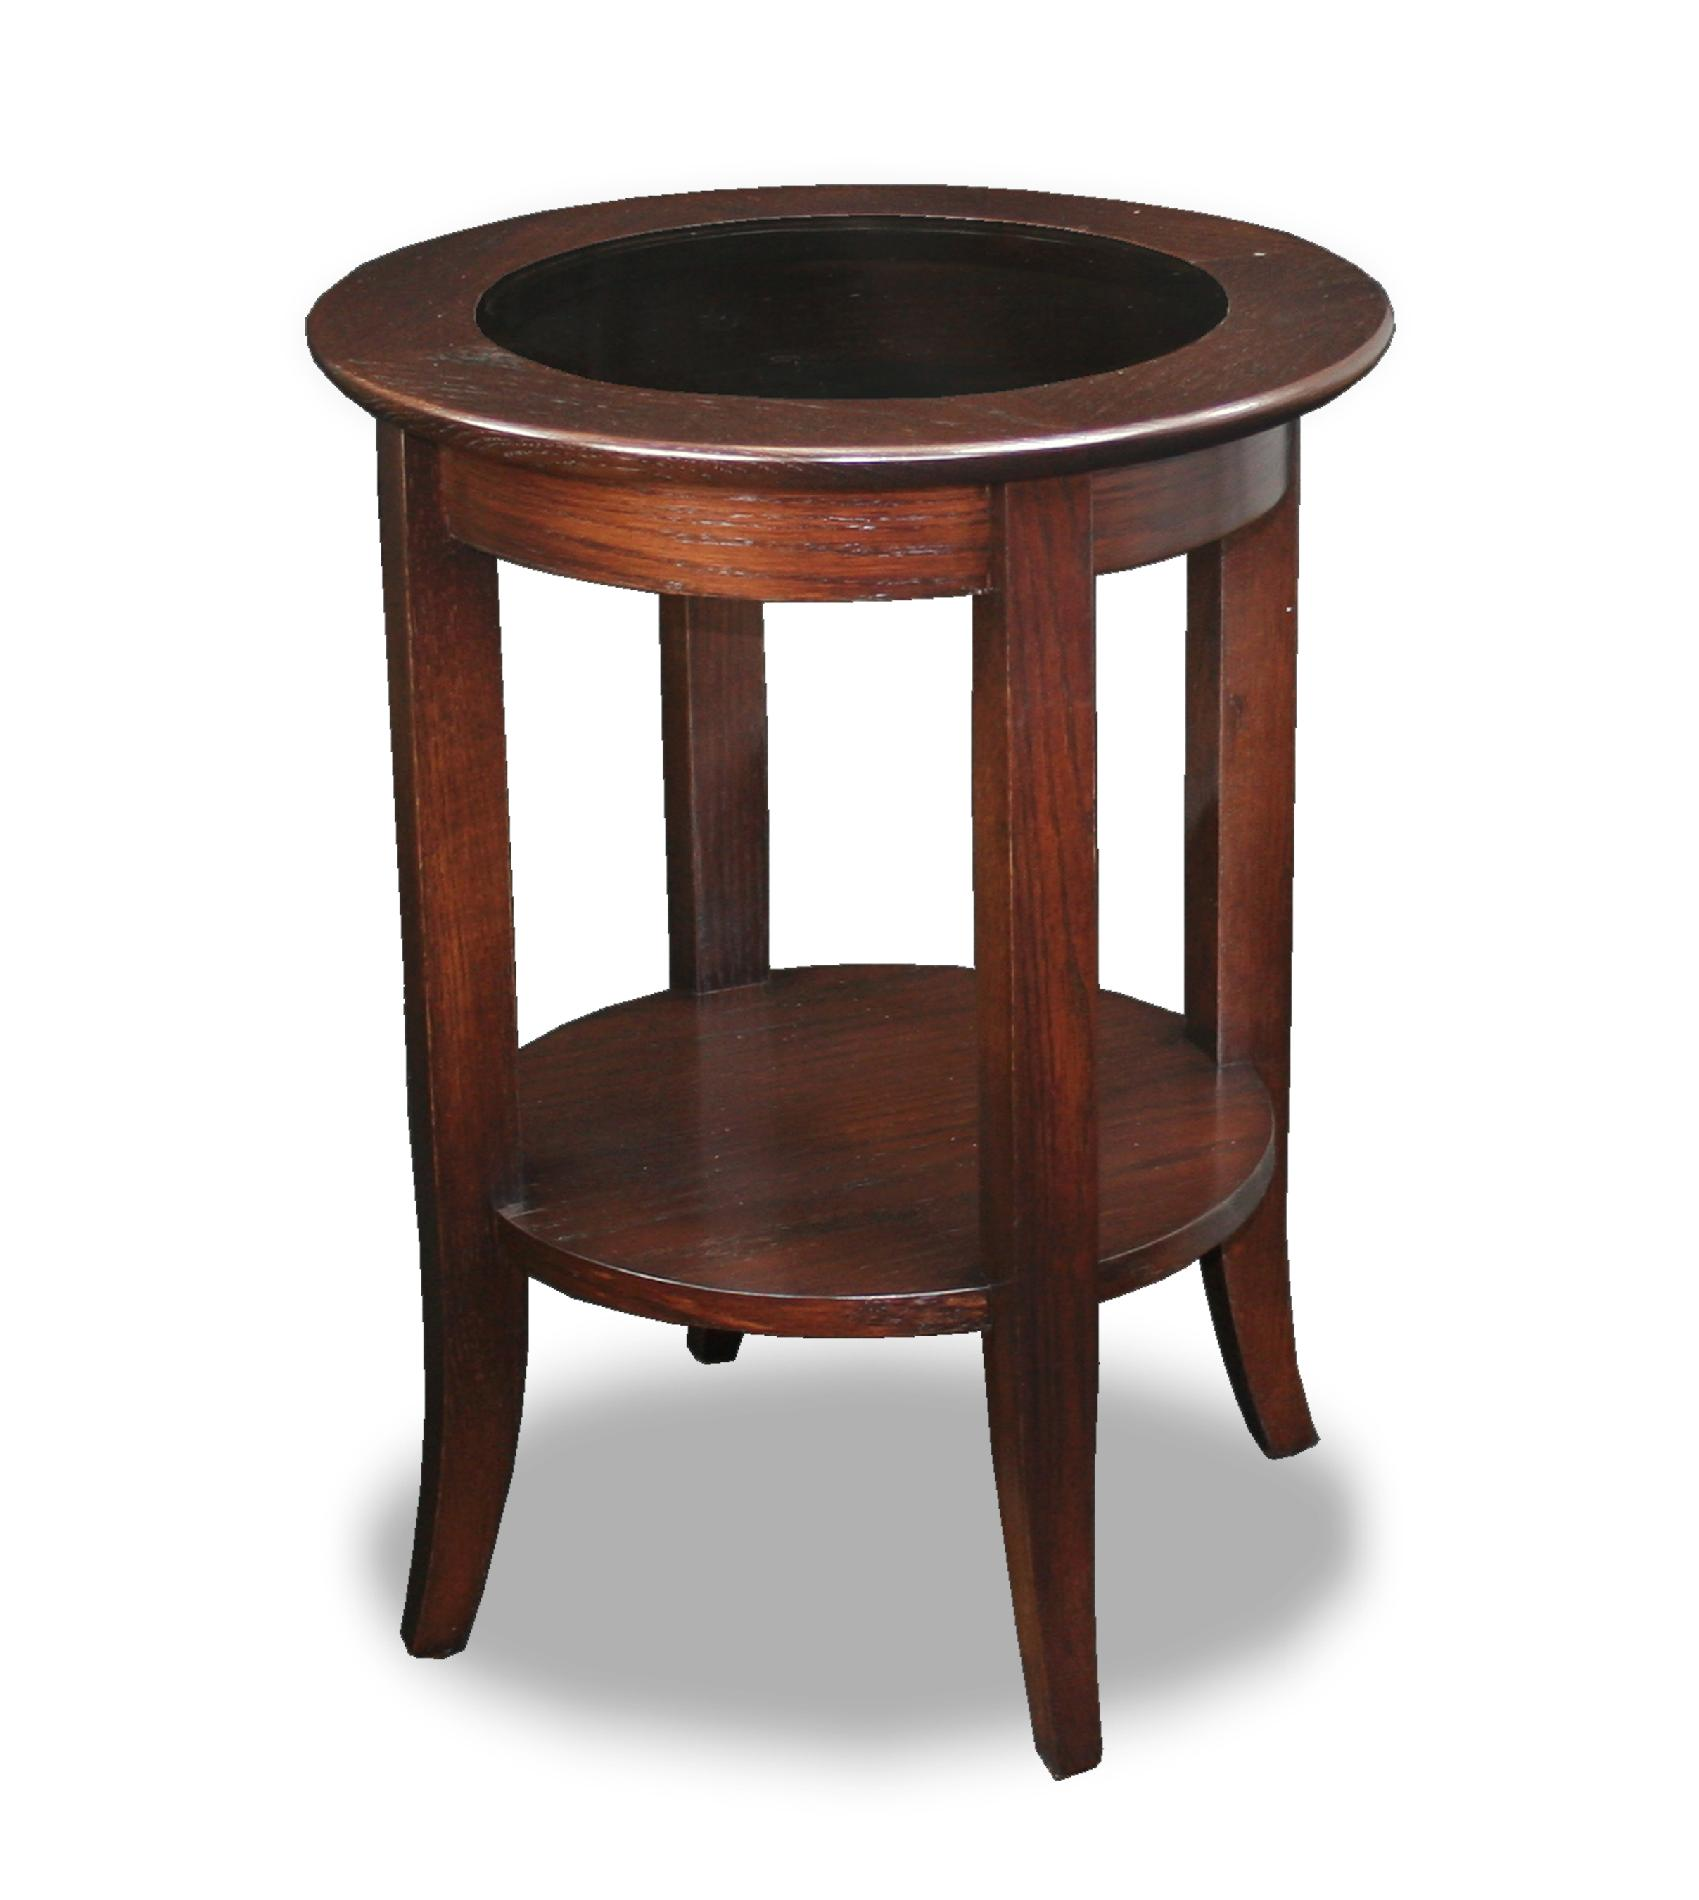 Round Glass Top End Tables Leick Solid Wood Round Glass Top End Table Chocolate Oak